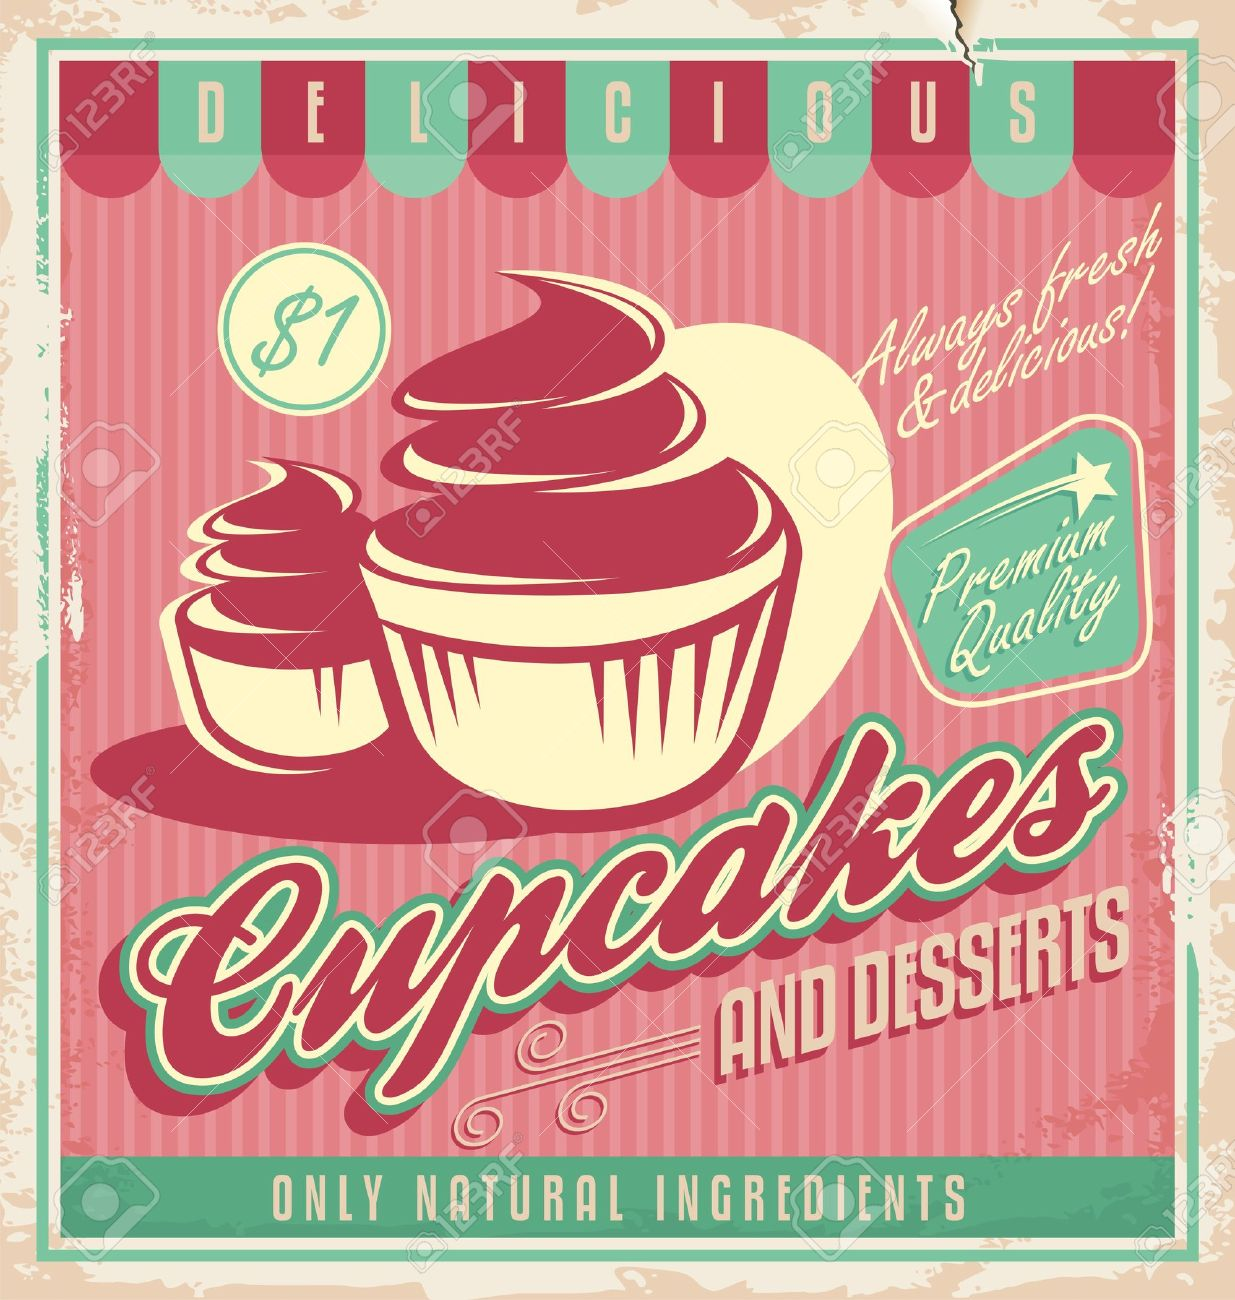 cake shop sign stock vector illustration and royalty cake shop sign cupcakes vintage poster design illustration